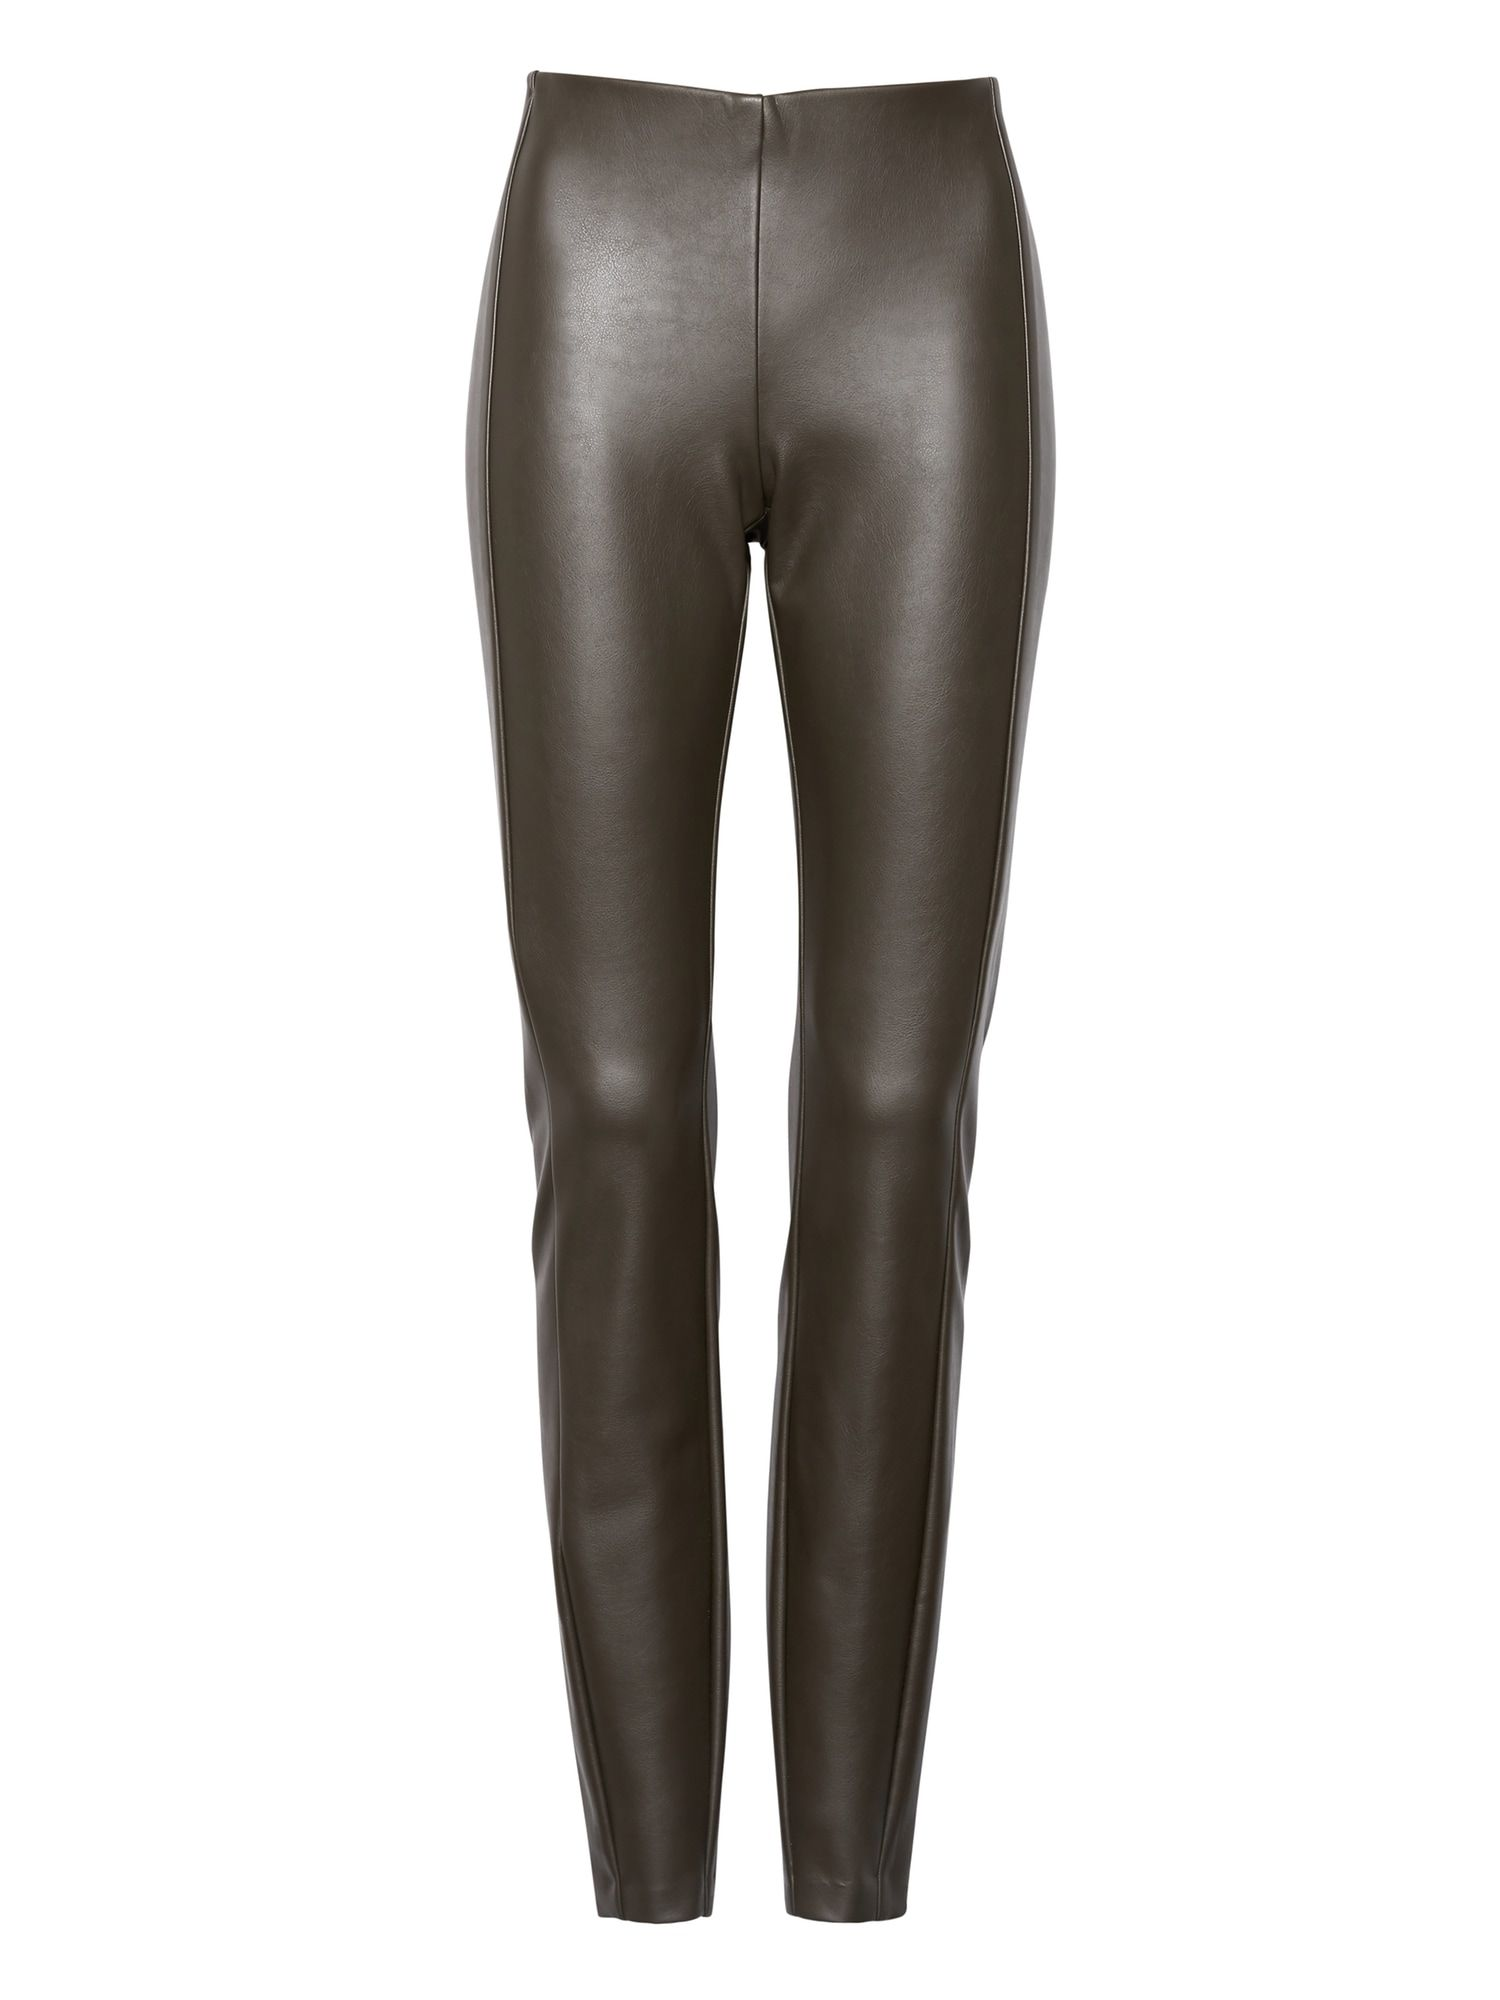 Login Leather Pant Leather Pants Pants